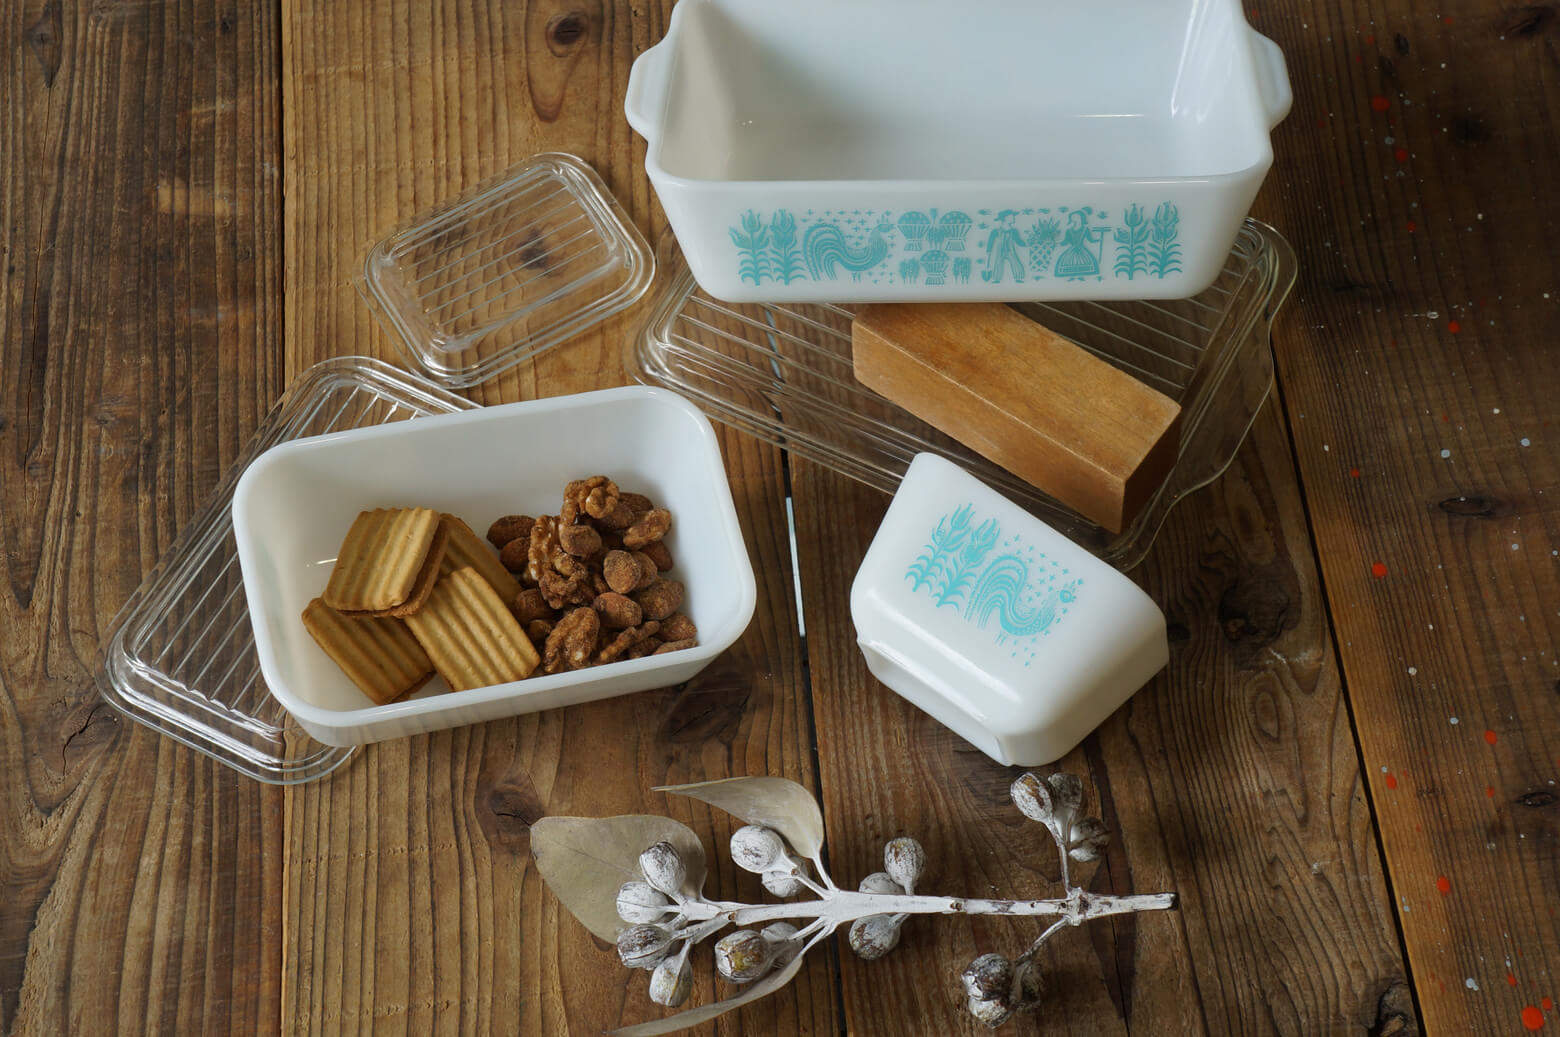 OLD PYREX BUTTER PRINT pattern Table Ware MADE IN USA / オールドパイレックス バター プリント テーブルウェア アメリカ製